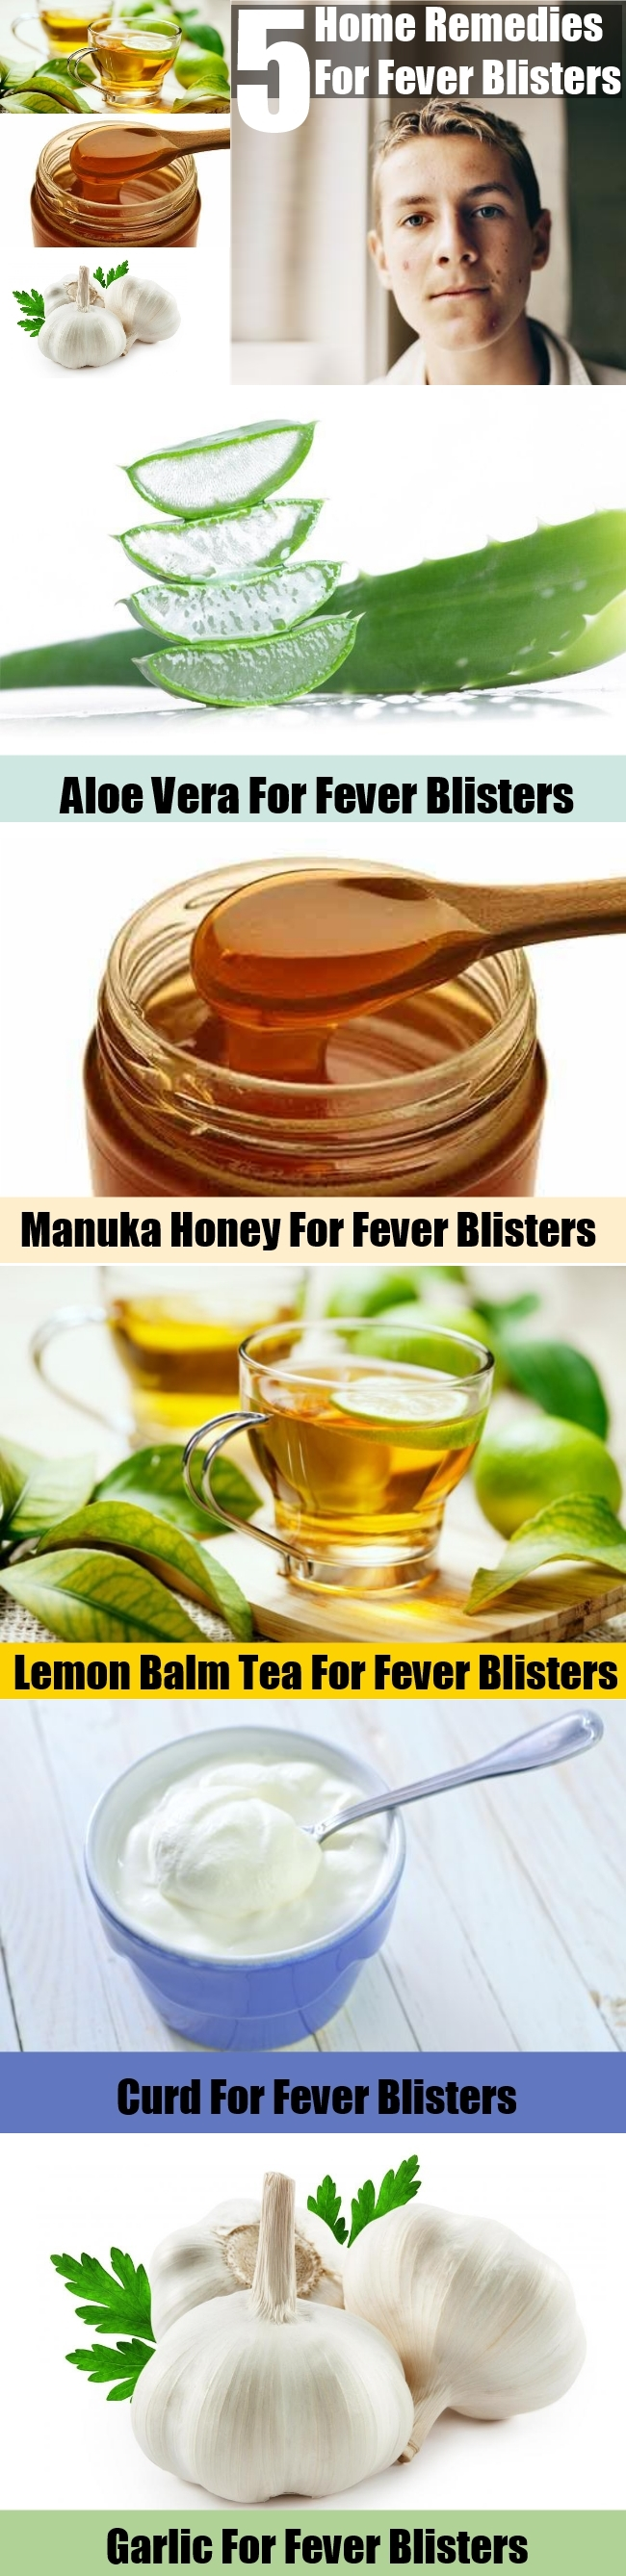 5 Home Remedies For Fever Blisters